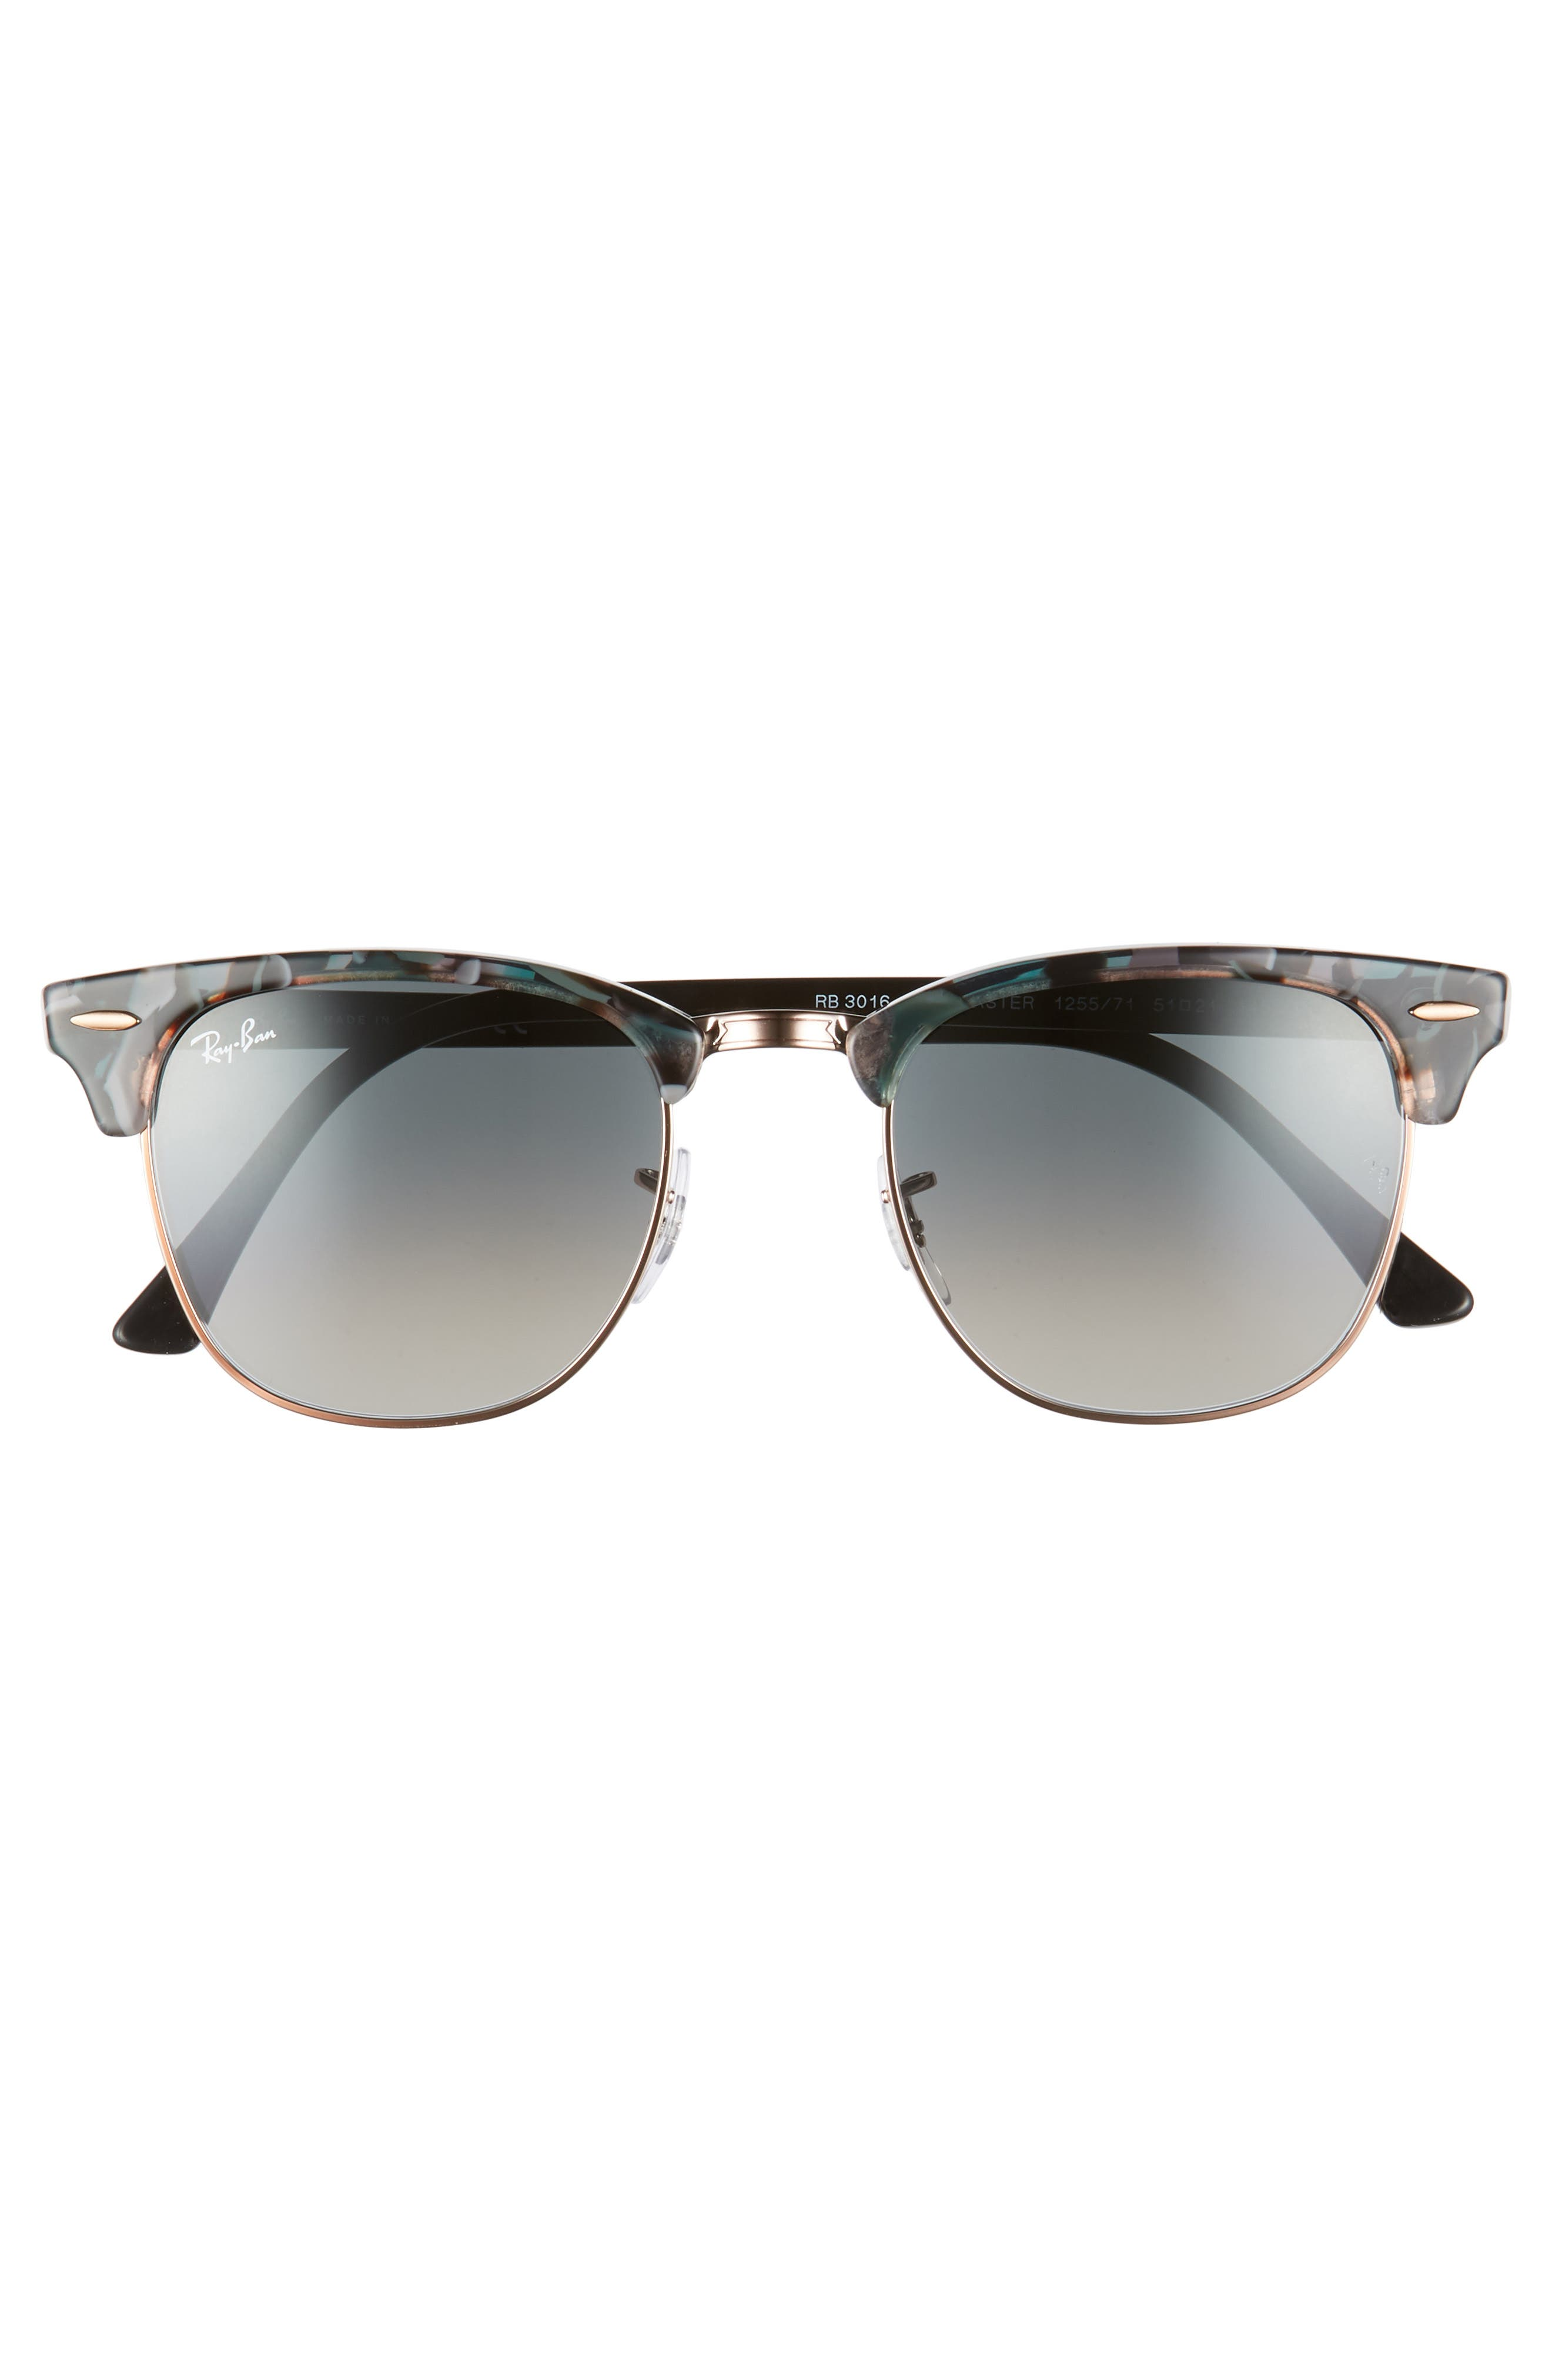 RAY-BAN, Clubmaster 51mm Gradient Sunglasses, Alternate thumbnail 3, color, GREY/ GREEN GRADIENT